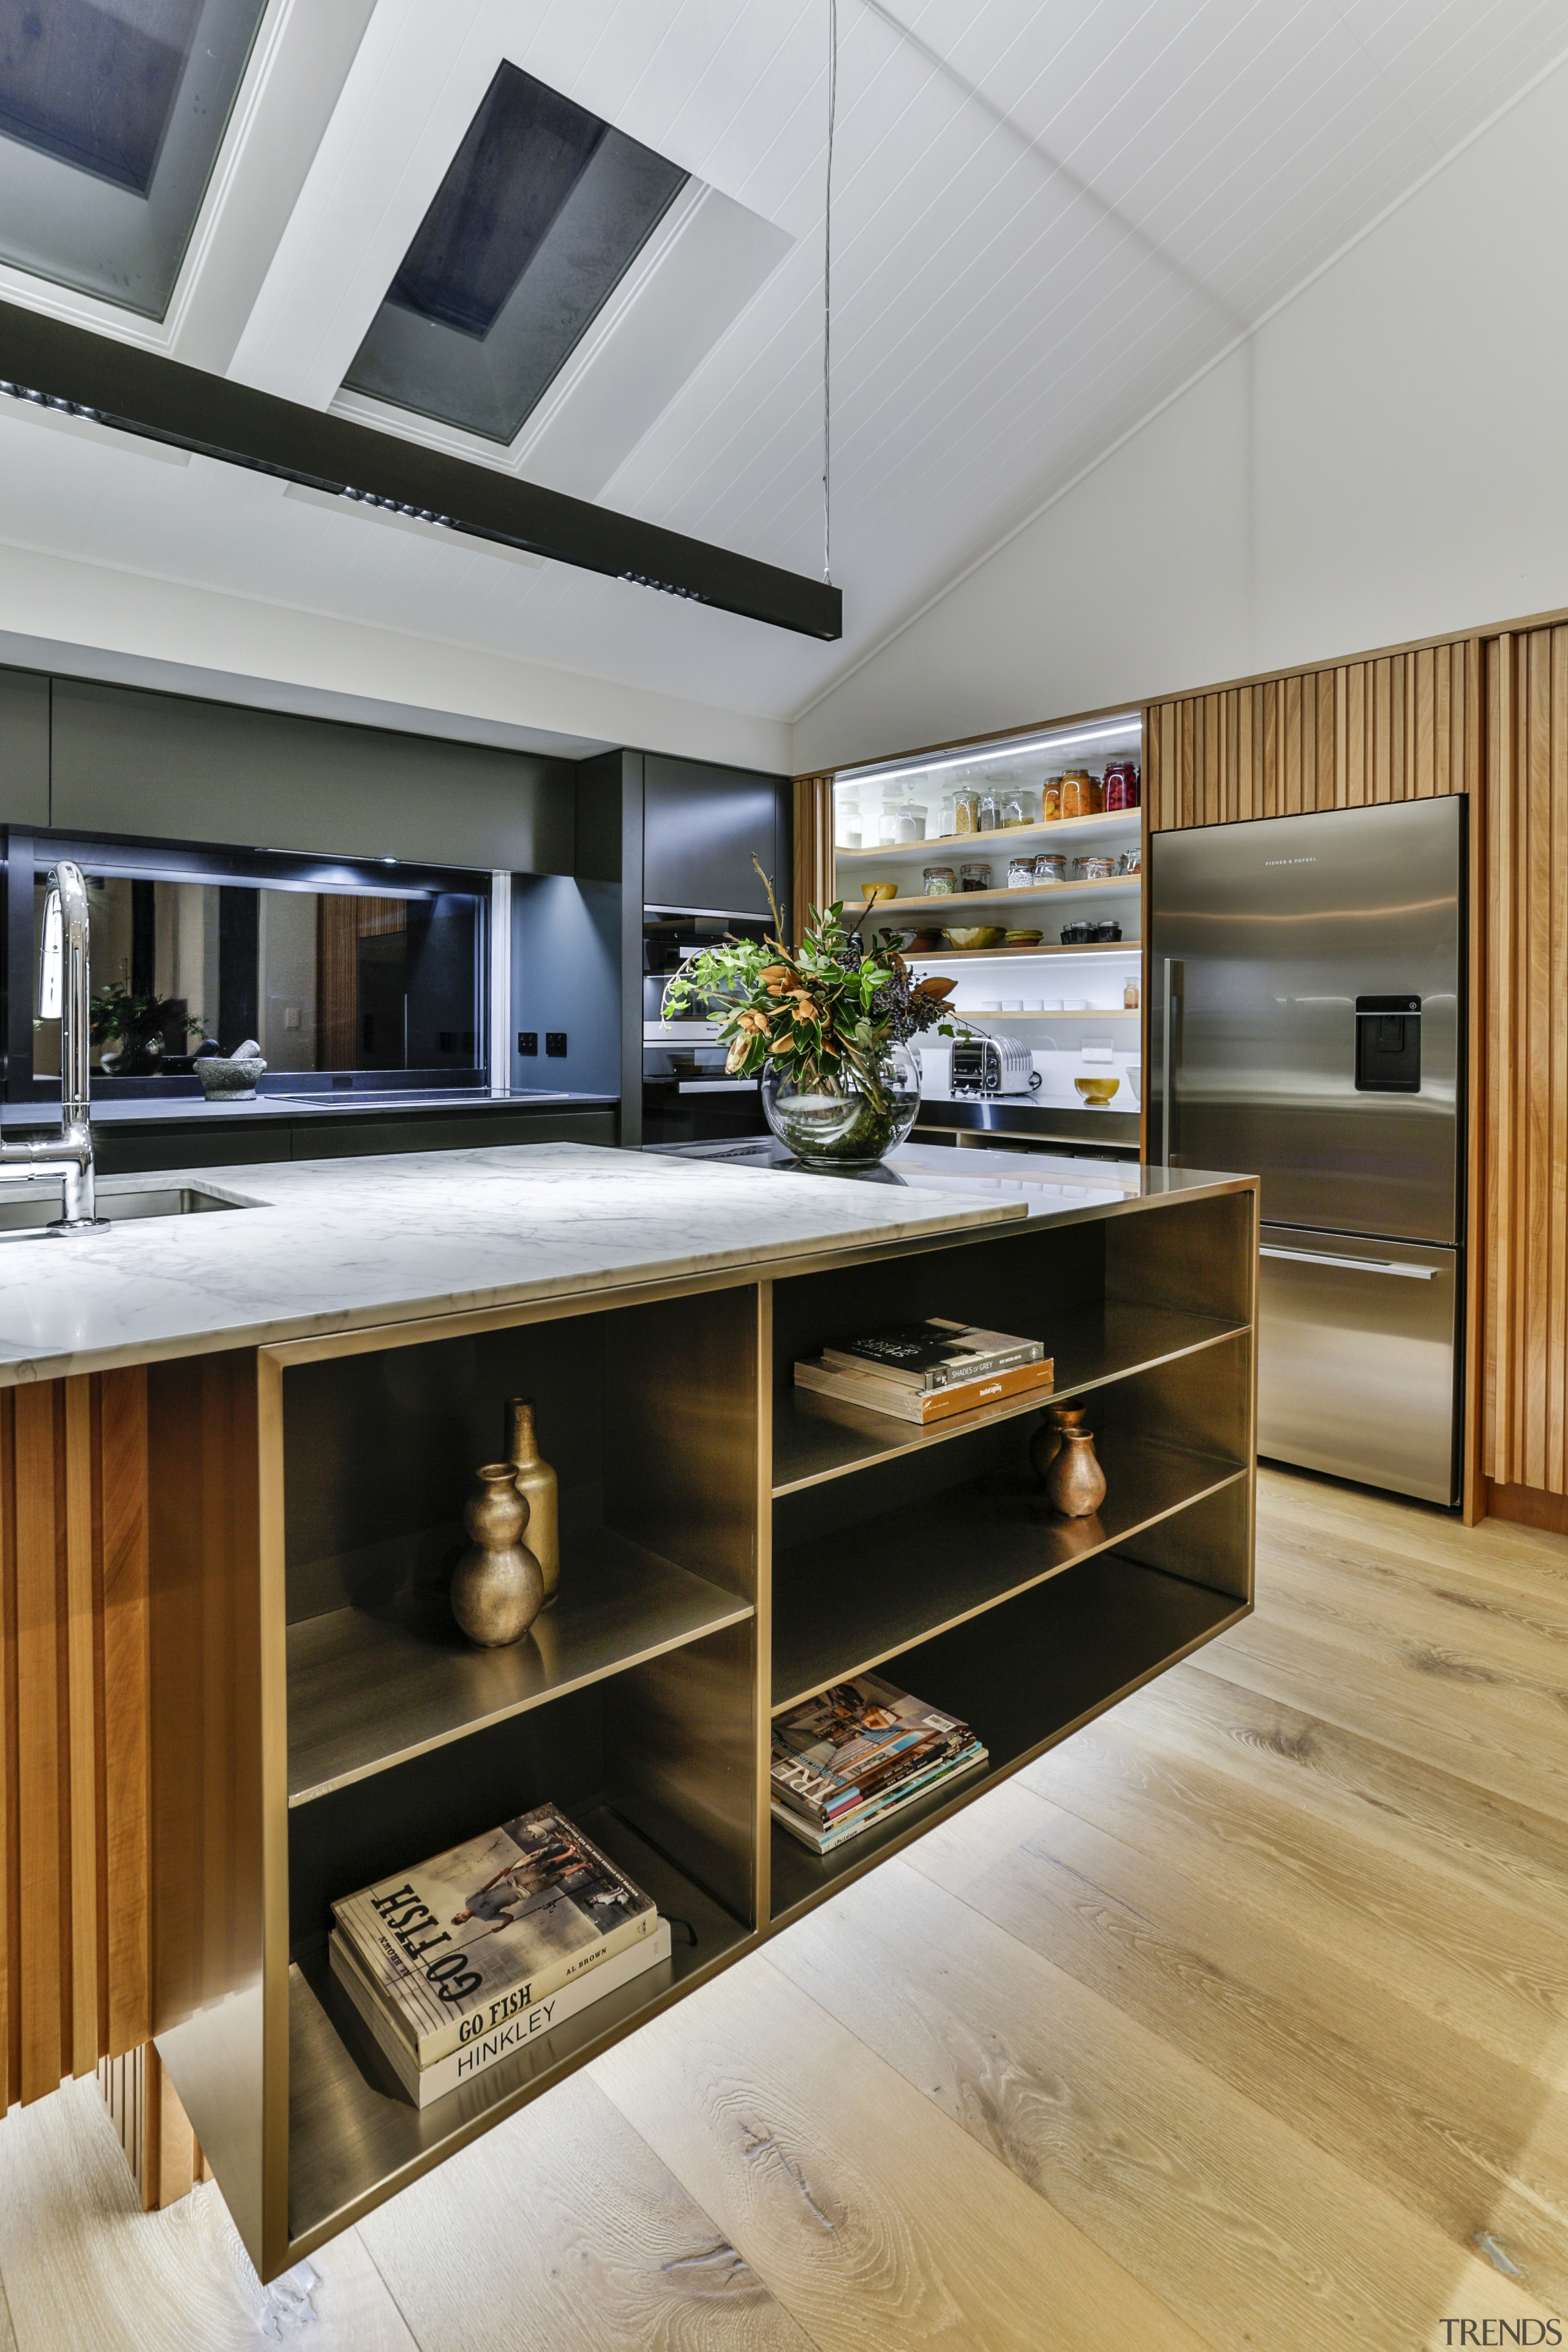 This kitchen by Fyfe Kitchens features stainless steel gray